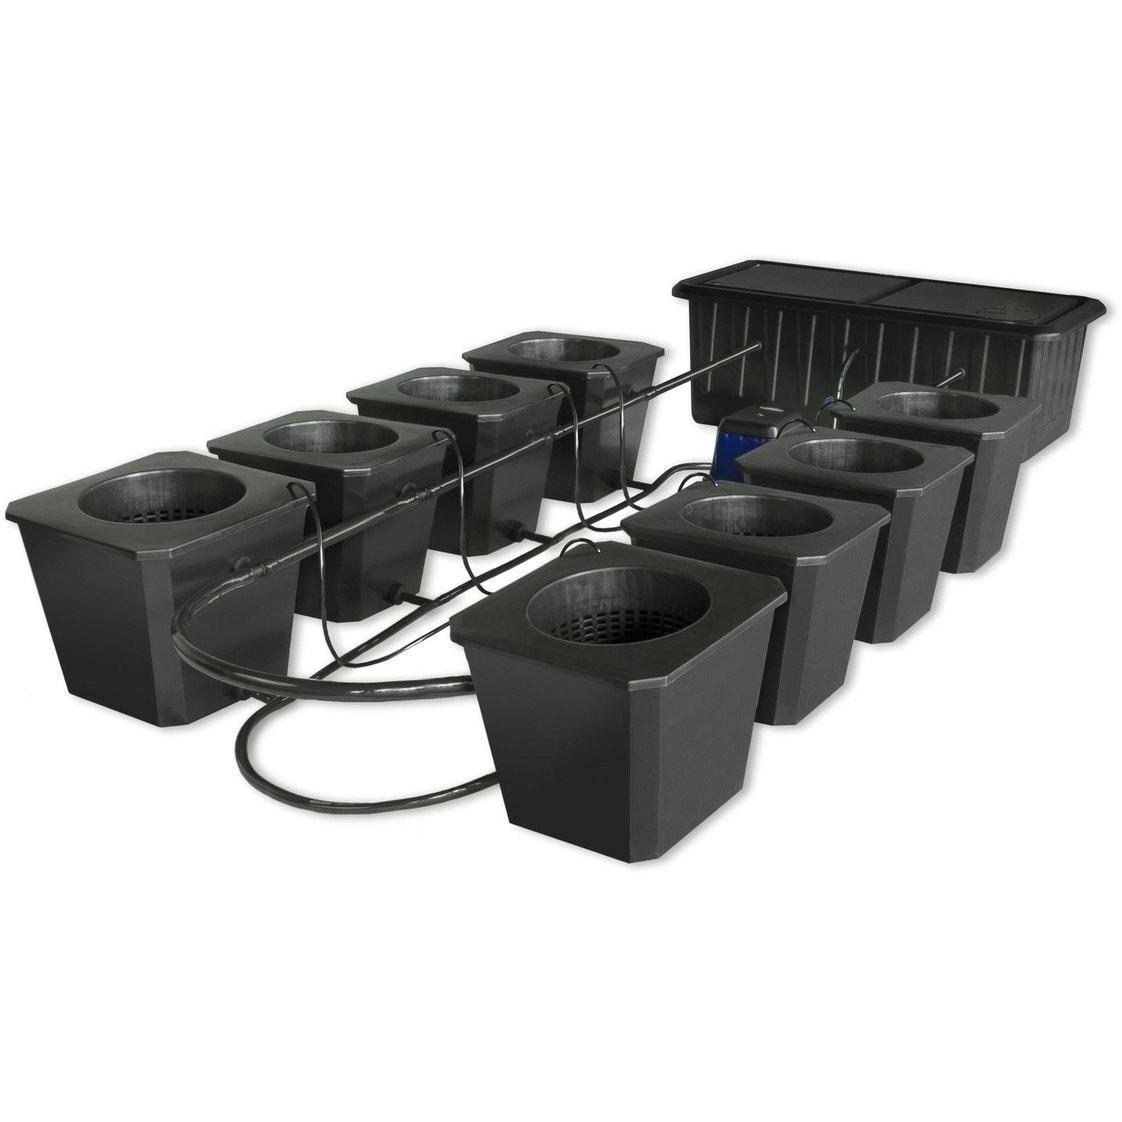 SuperCloset SuperCloset 8 Site Bubble Flow Buckets Hydroponic Grow System